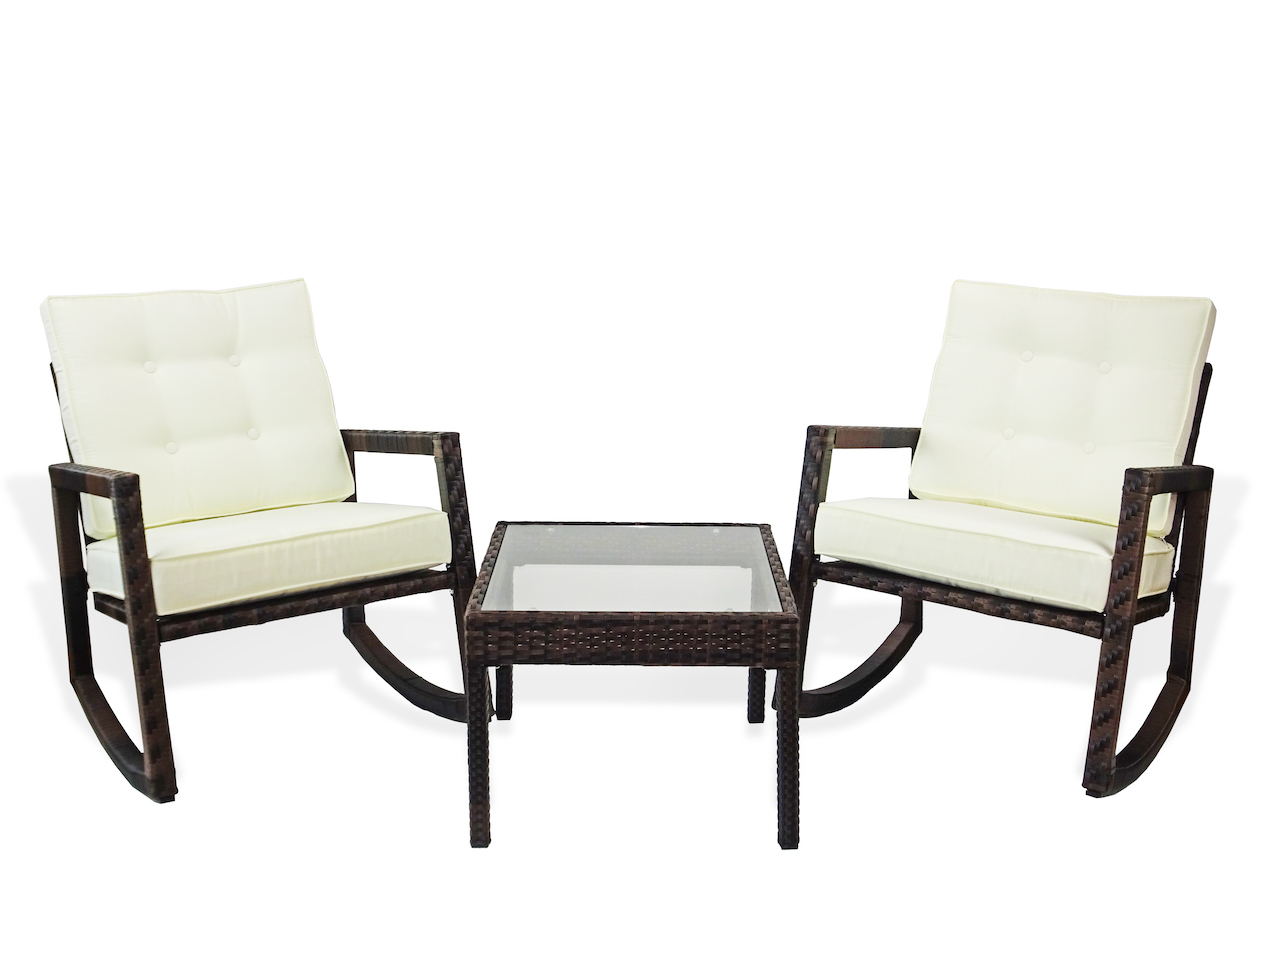 Patio 3 pc lounge set rocking chairs and coffee table for I furniture outdoor furniture